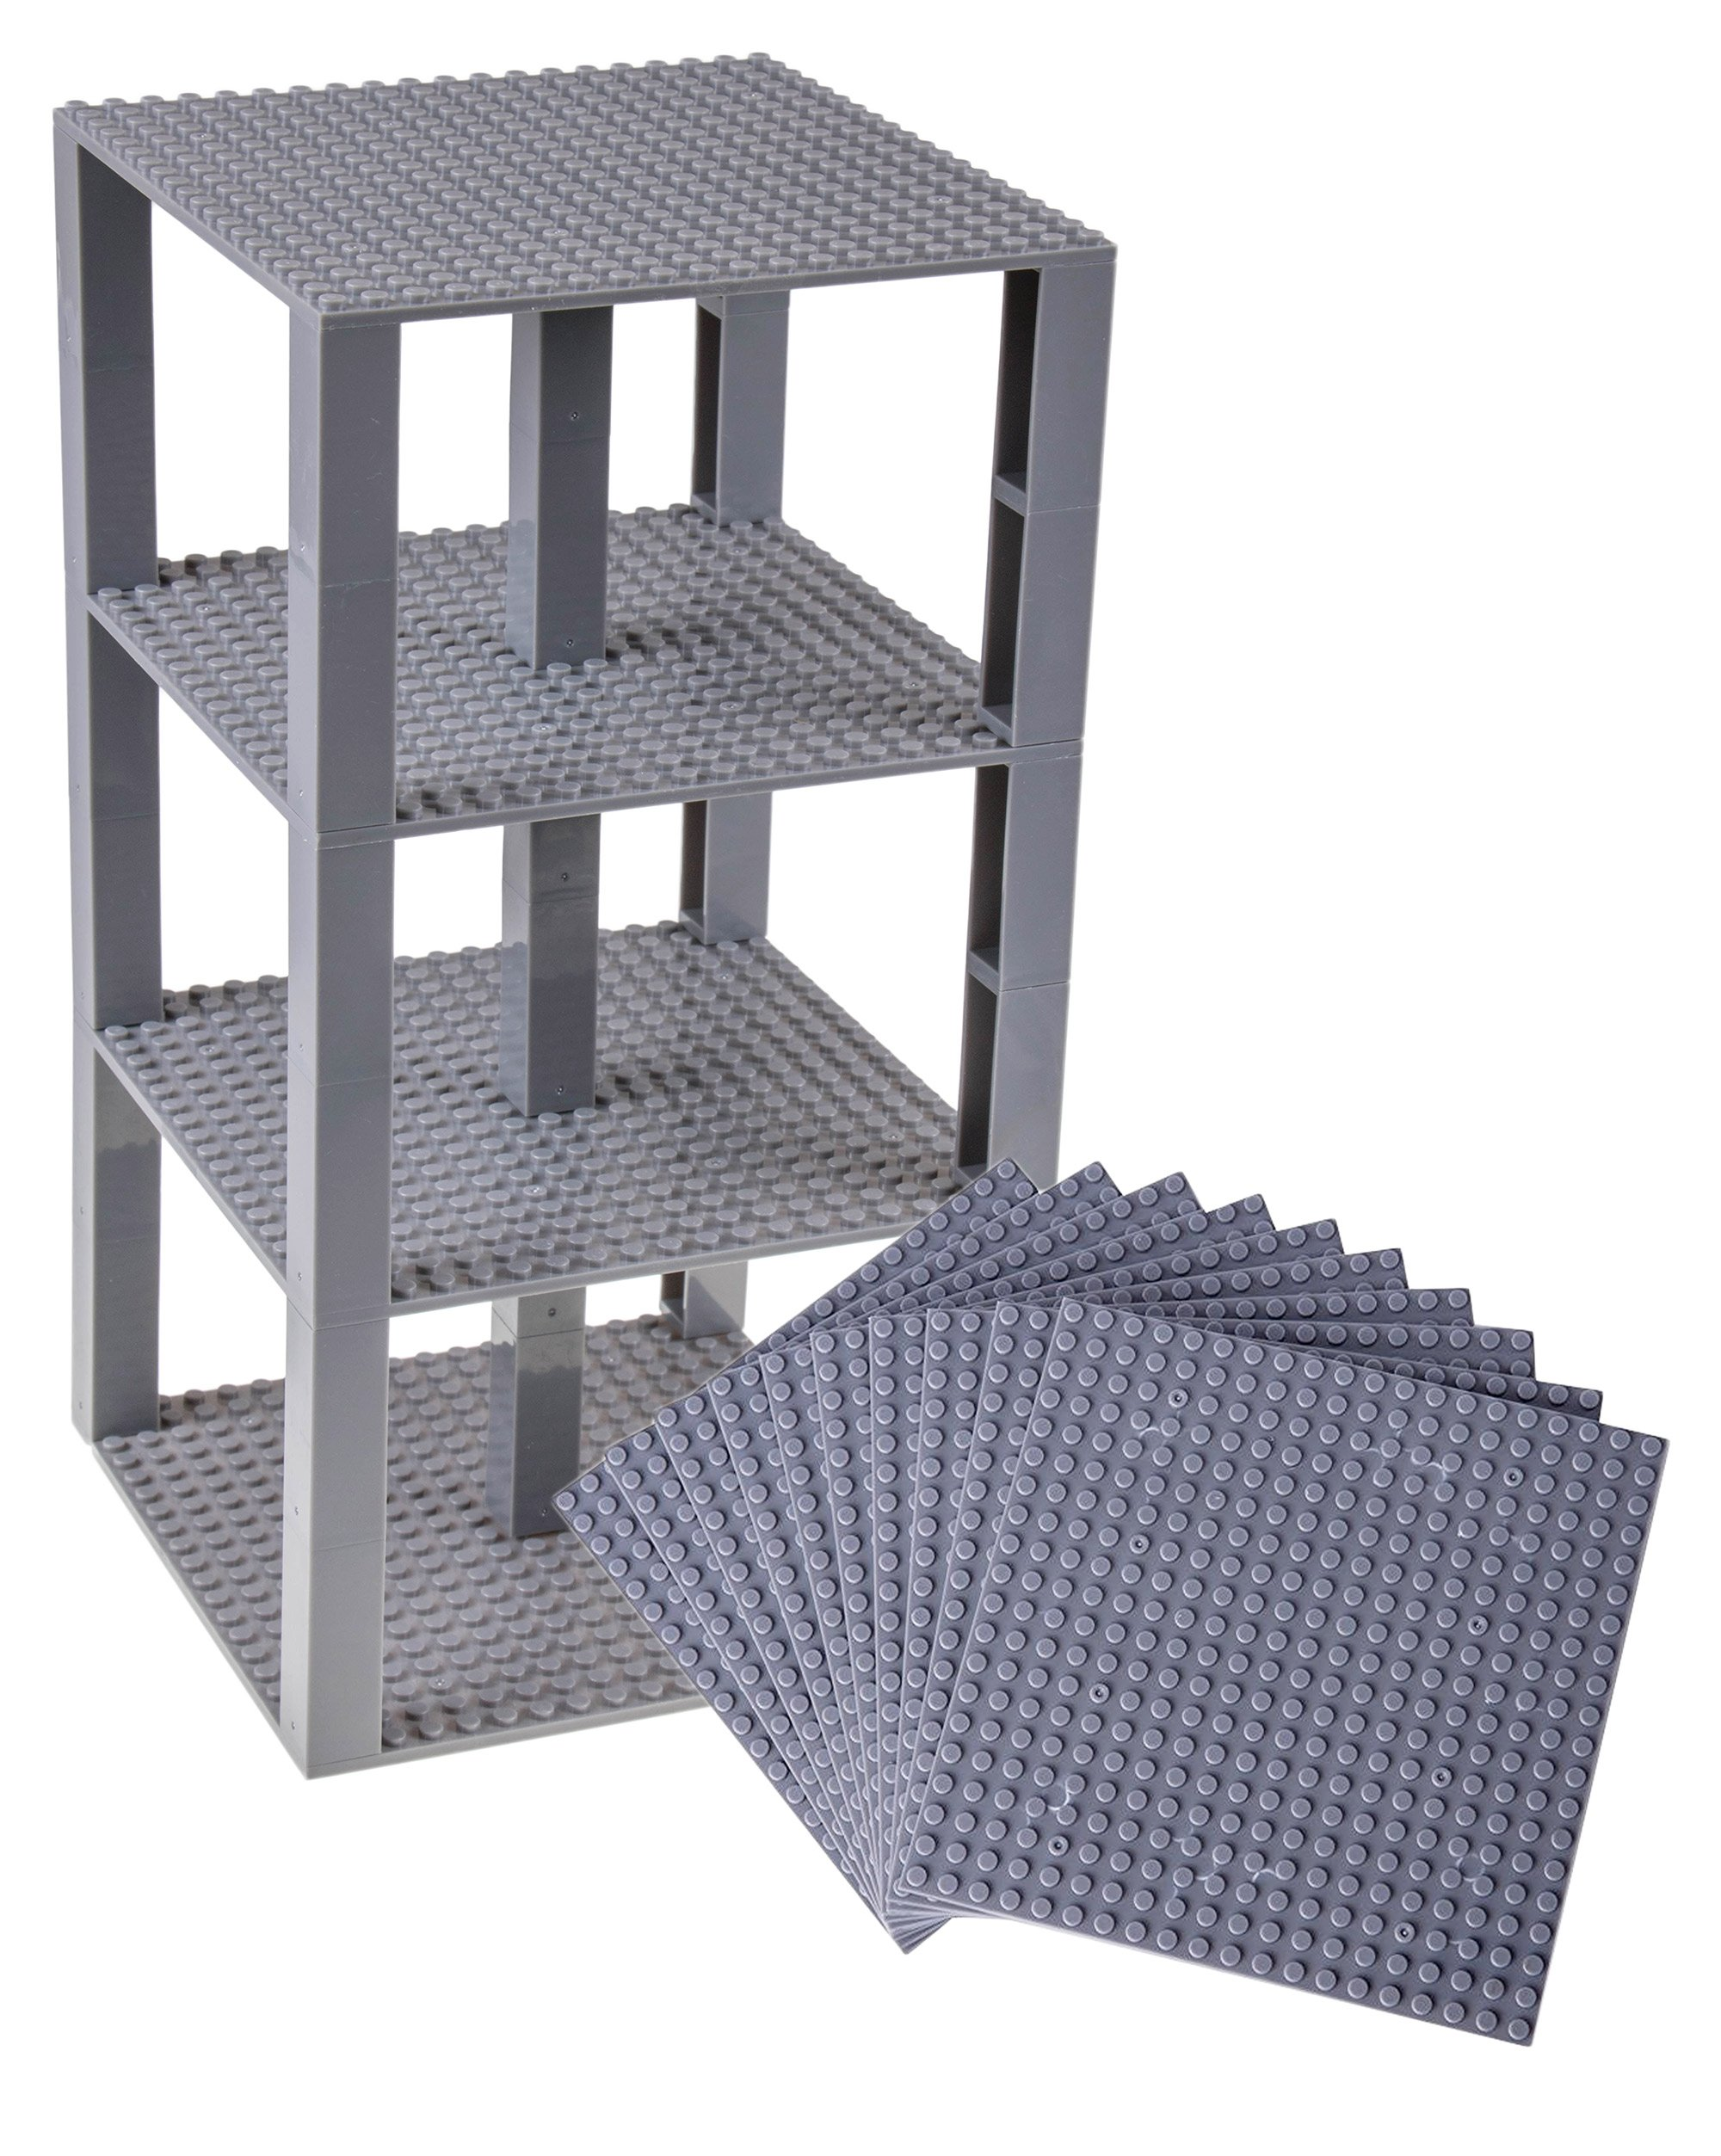 """Strictly Briks Classic Stackable Baseplates 6"""" x 6"""" Brik Tower 100% Compatible with All Major Brands   Building Bricks for Towers, Shelves and More   10 Base Plates & 80 Stackers  Gray"""